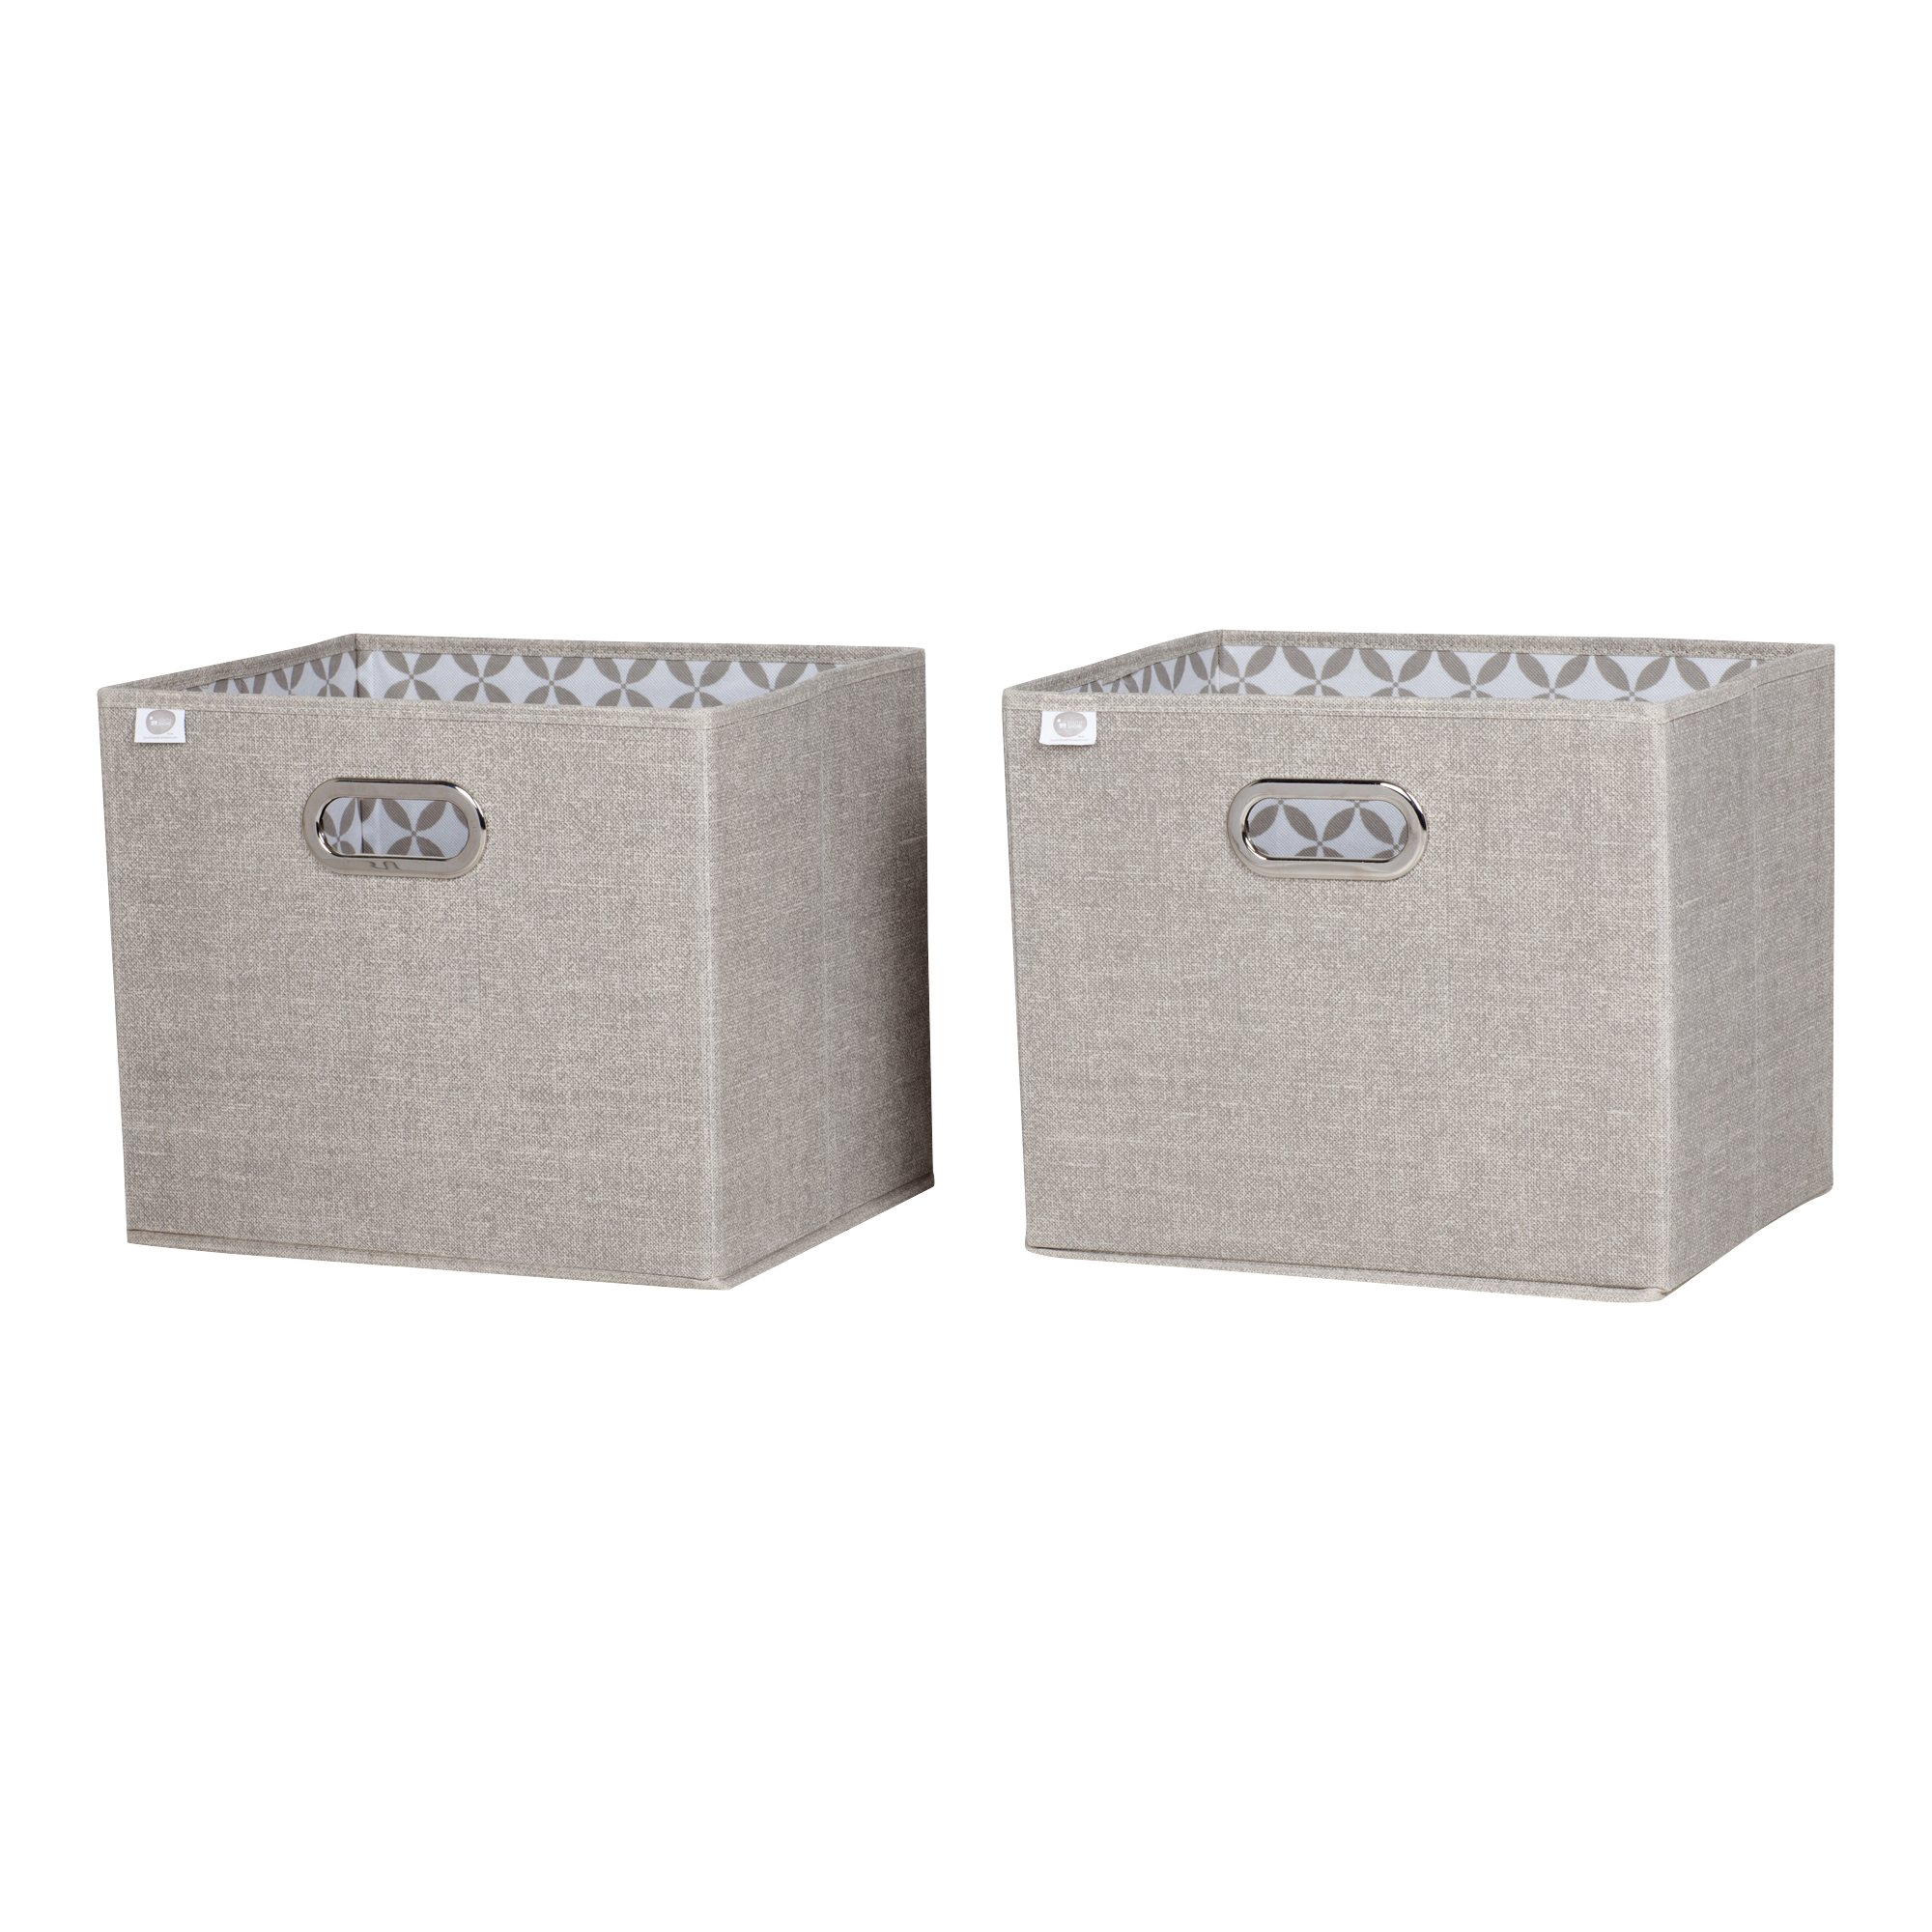 South Shore Storit Chambray Fabric Storage Baskets (2 Pack), Taupe by South Shore